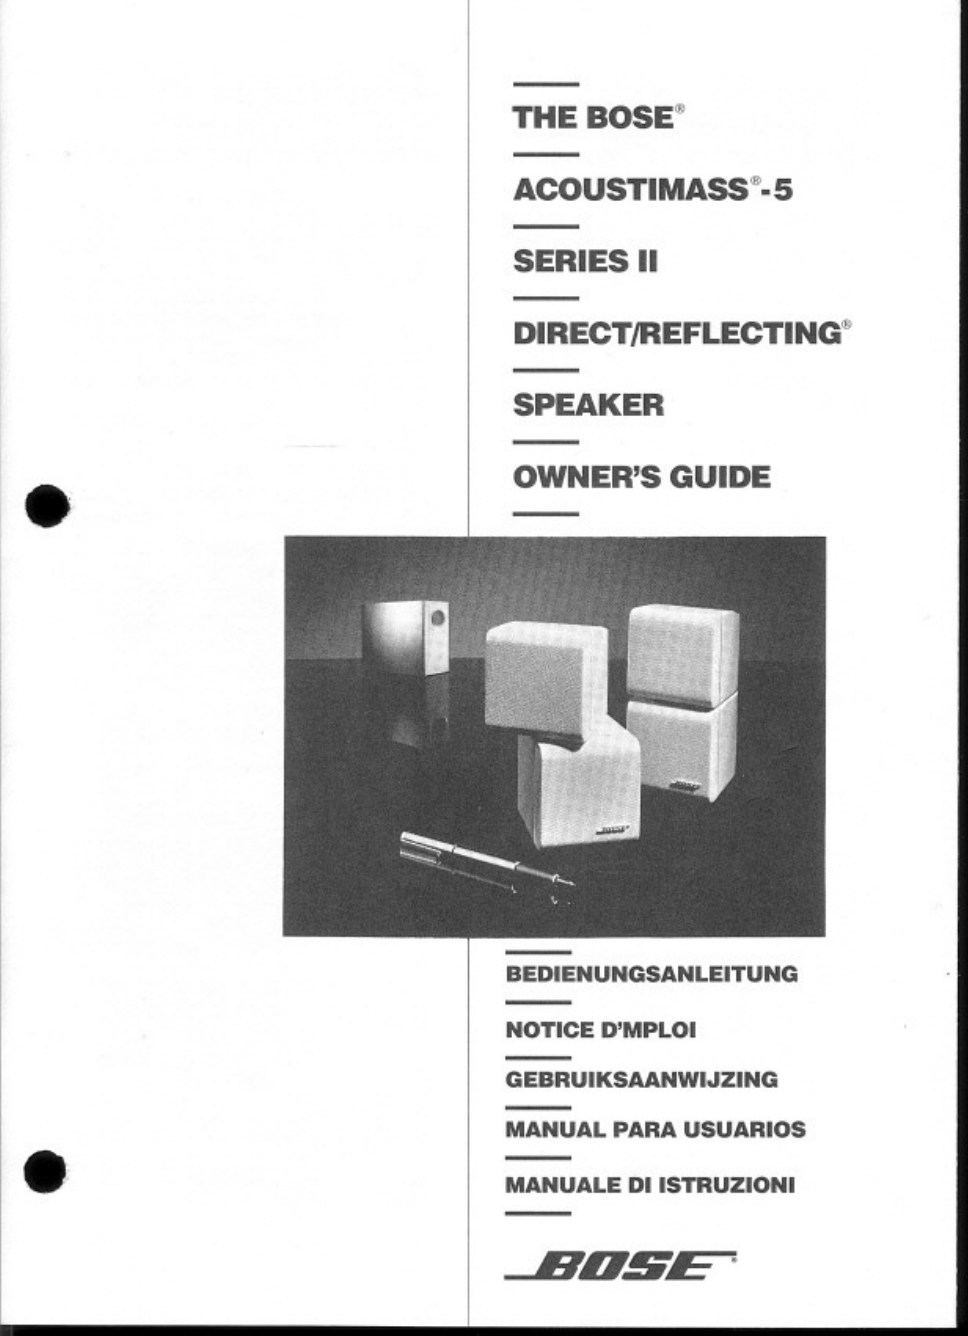 bose acoustimass 5 series ii system owner s manual free pdf rh manualagent com Bose Acoustimass Speaker Setup bose acoustimass 5 owners manual